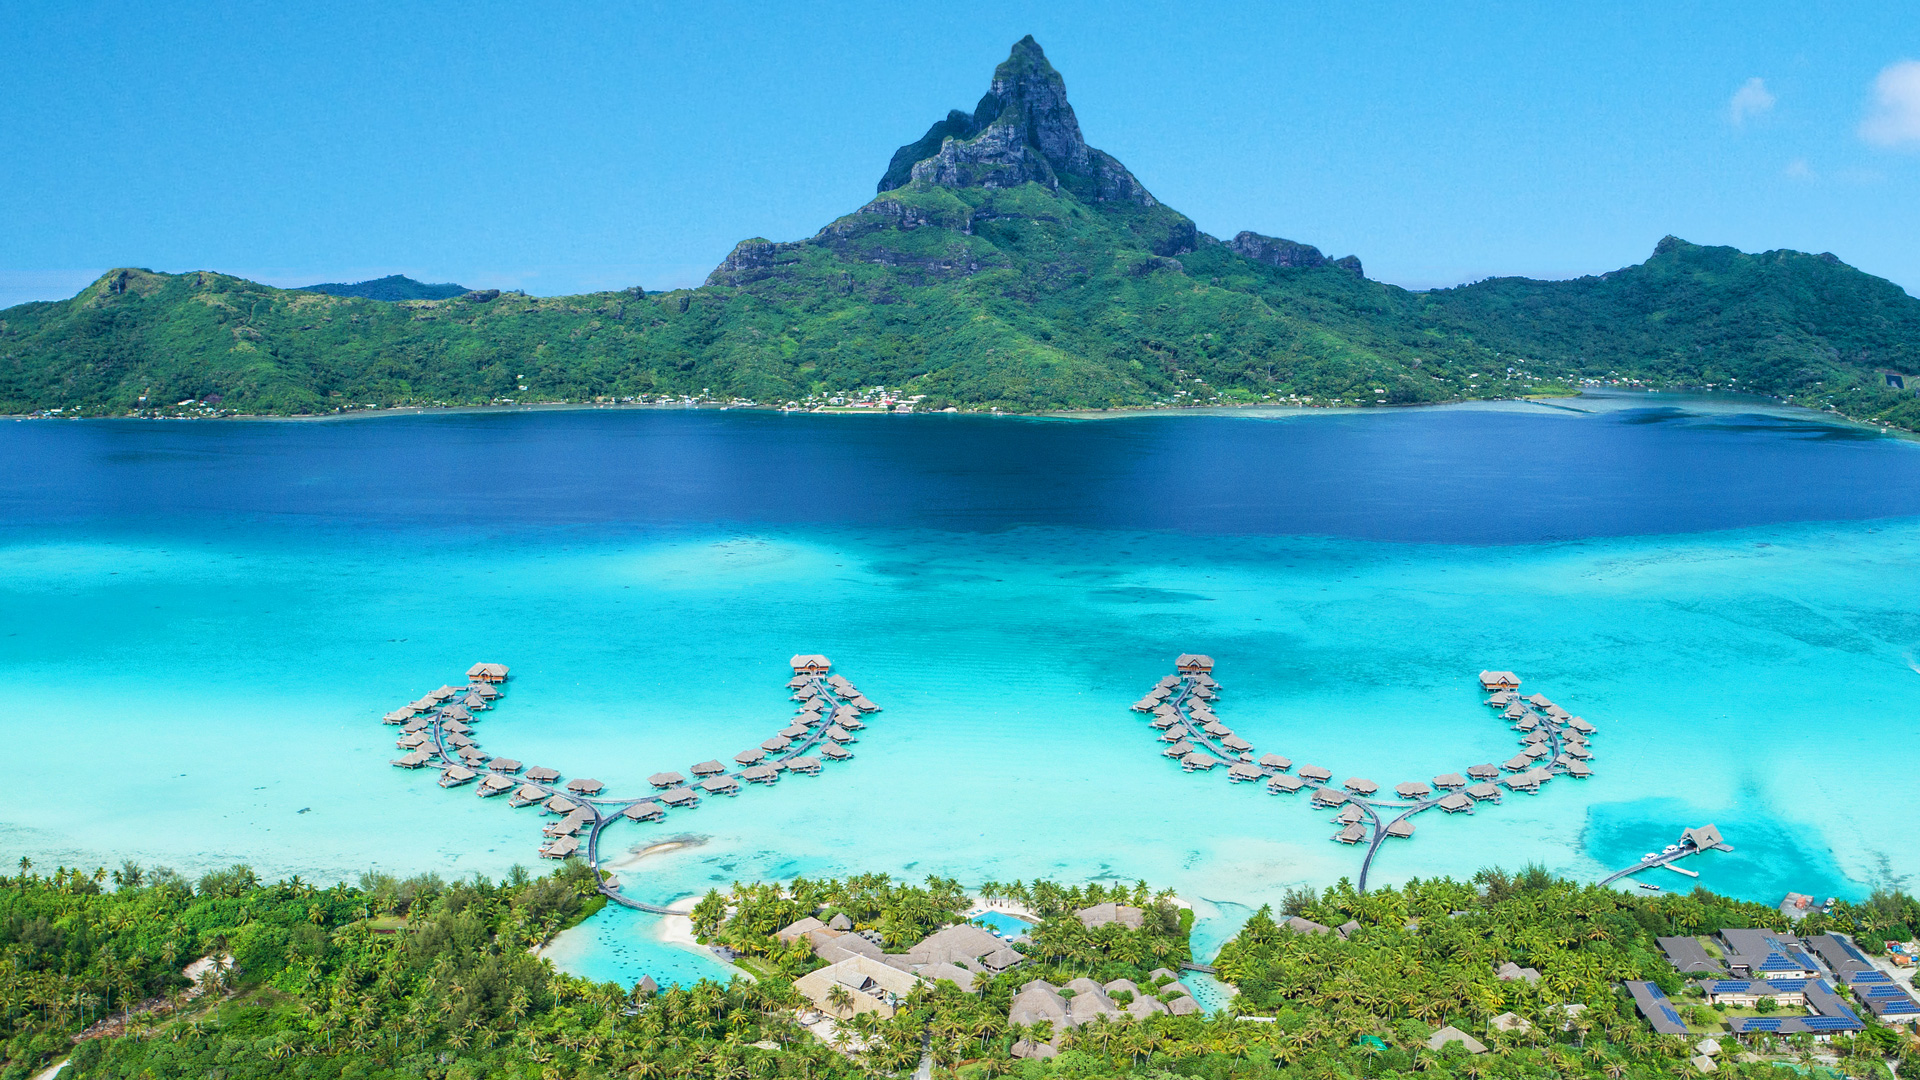 https://tahititourisme.cl/wp-content/uploads/2017/08/17-12-ICB-0115-1920px.jpg